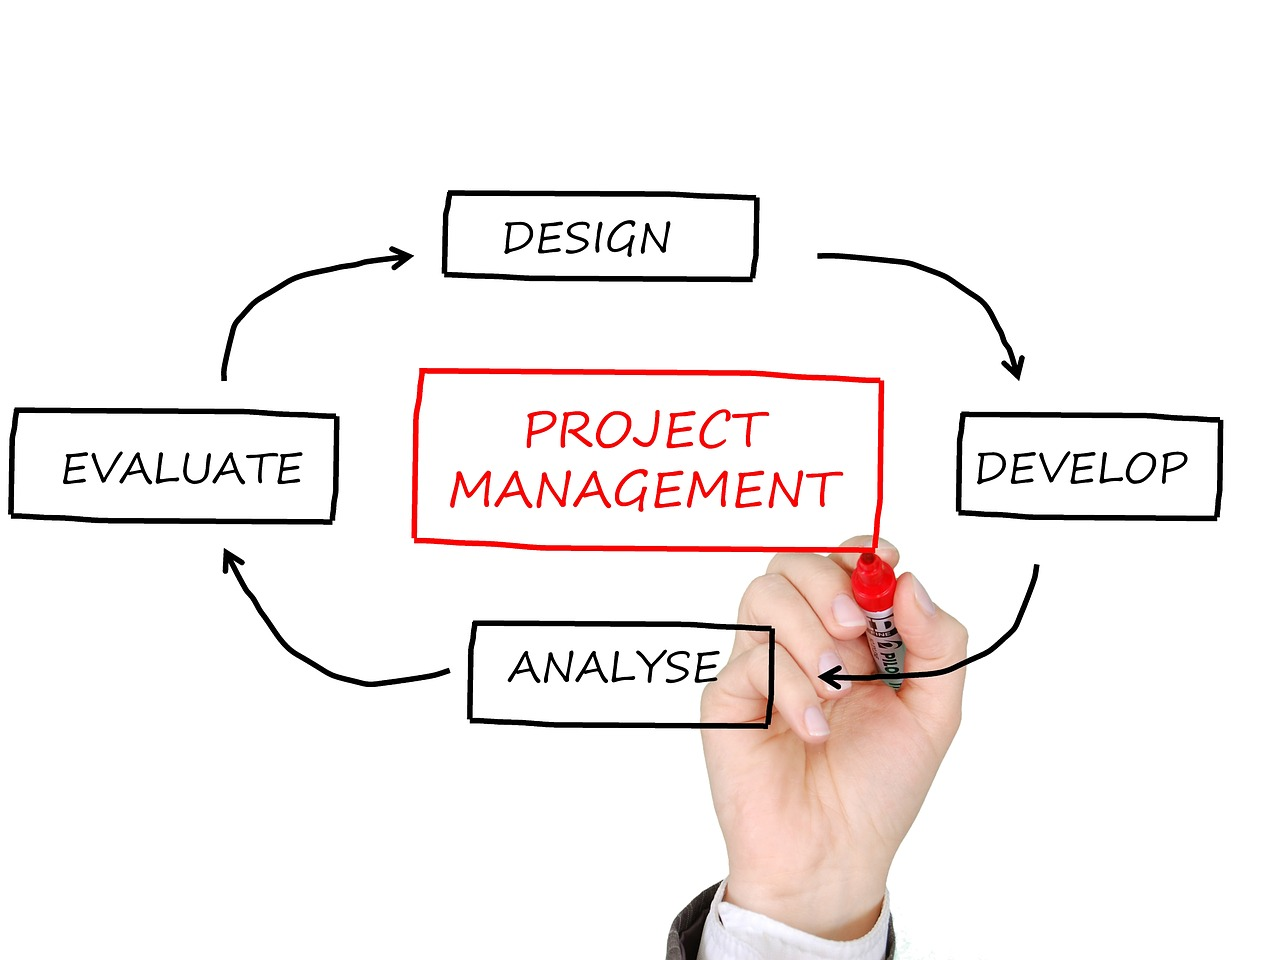 Project Manager Duties Responsibilities Project Manager Designing Buildings Wiki